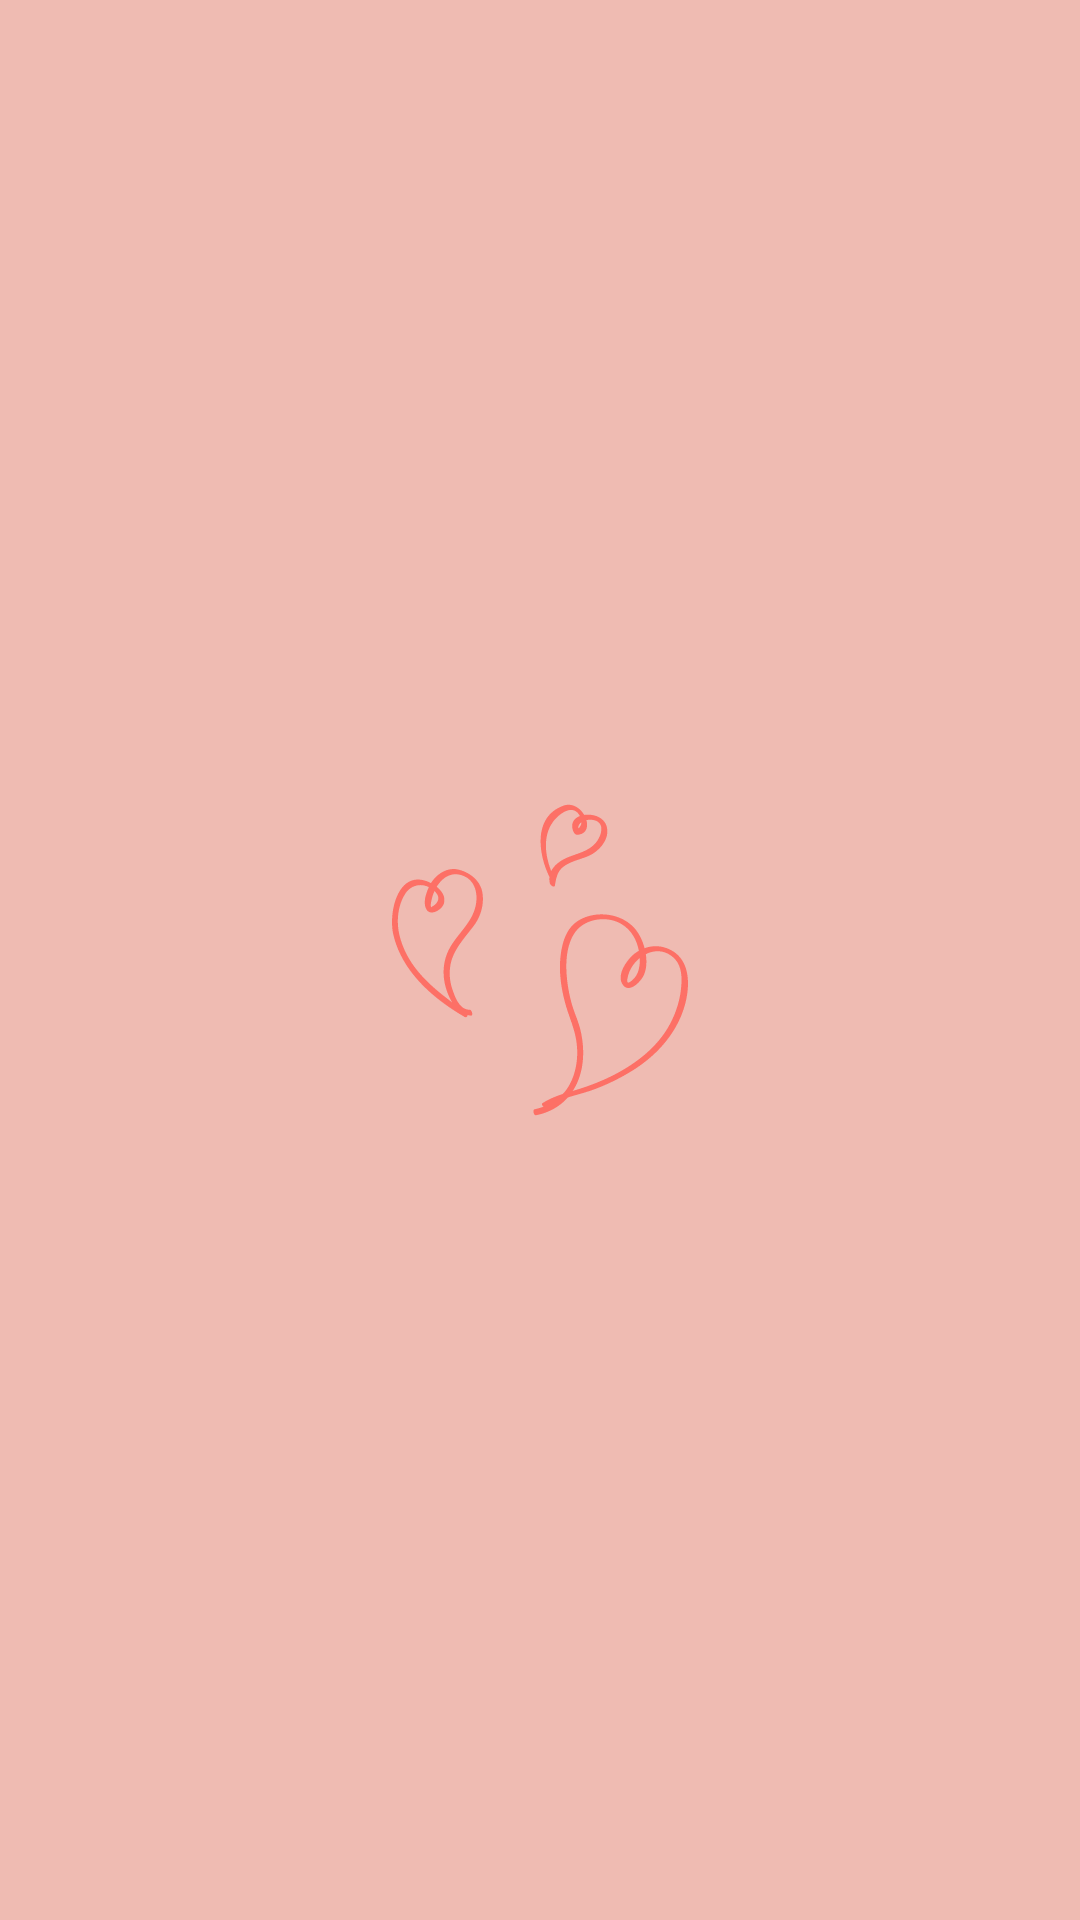 Heart Wallpaper For Instagram Highlights